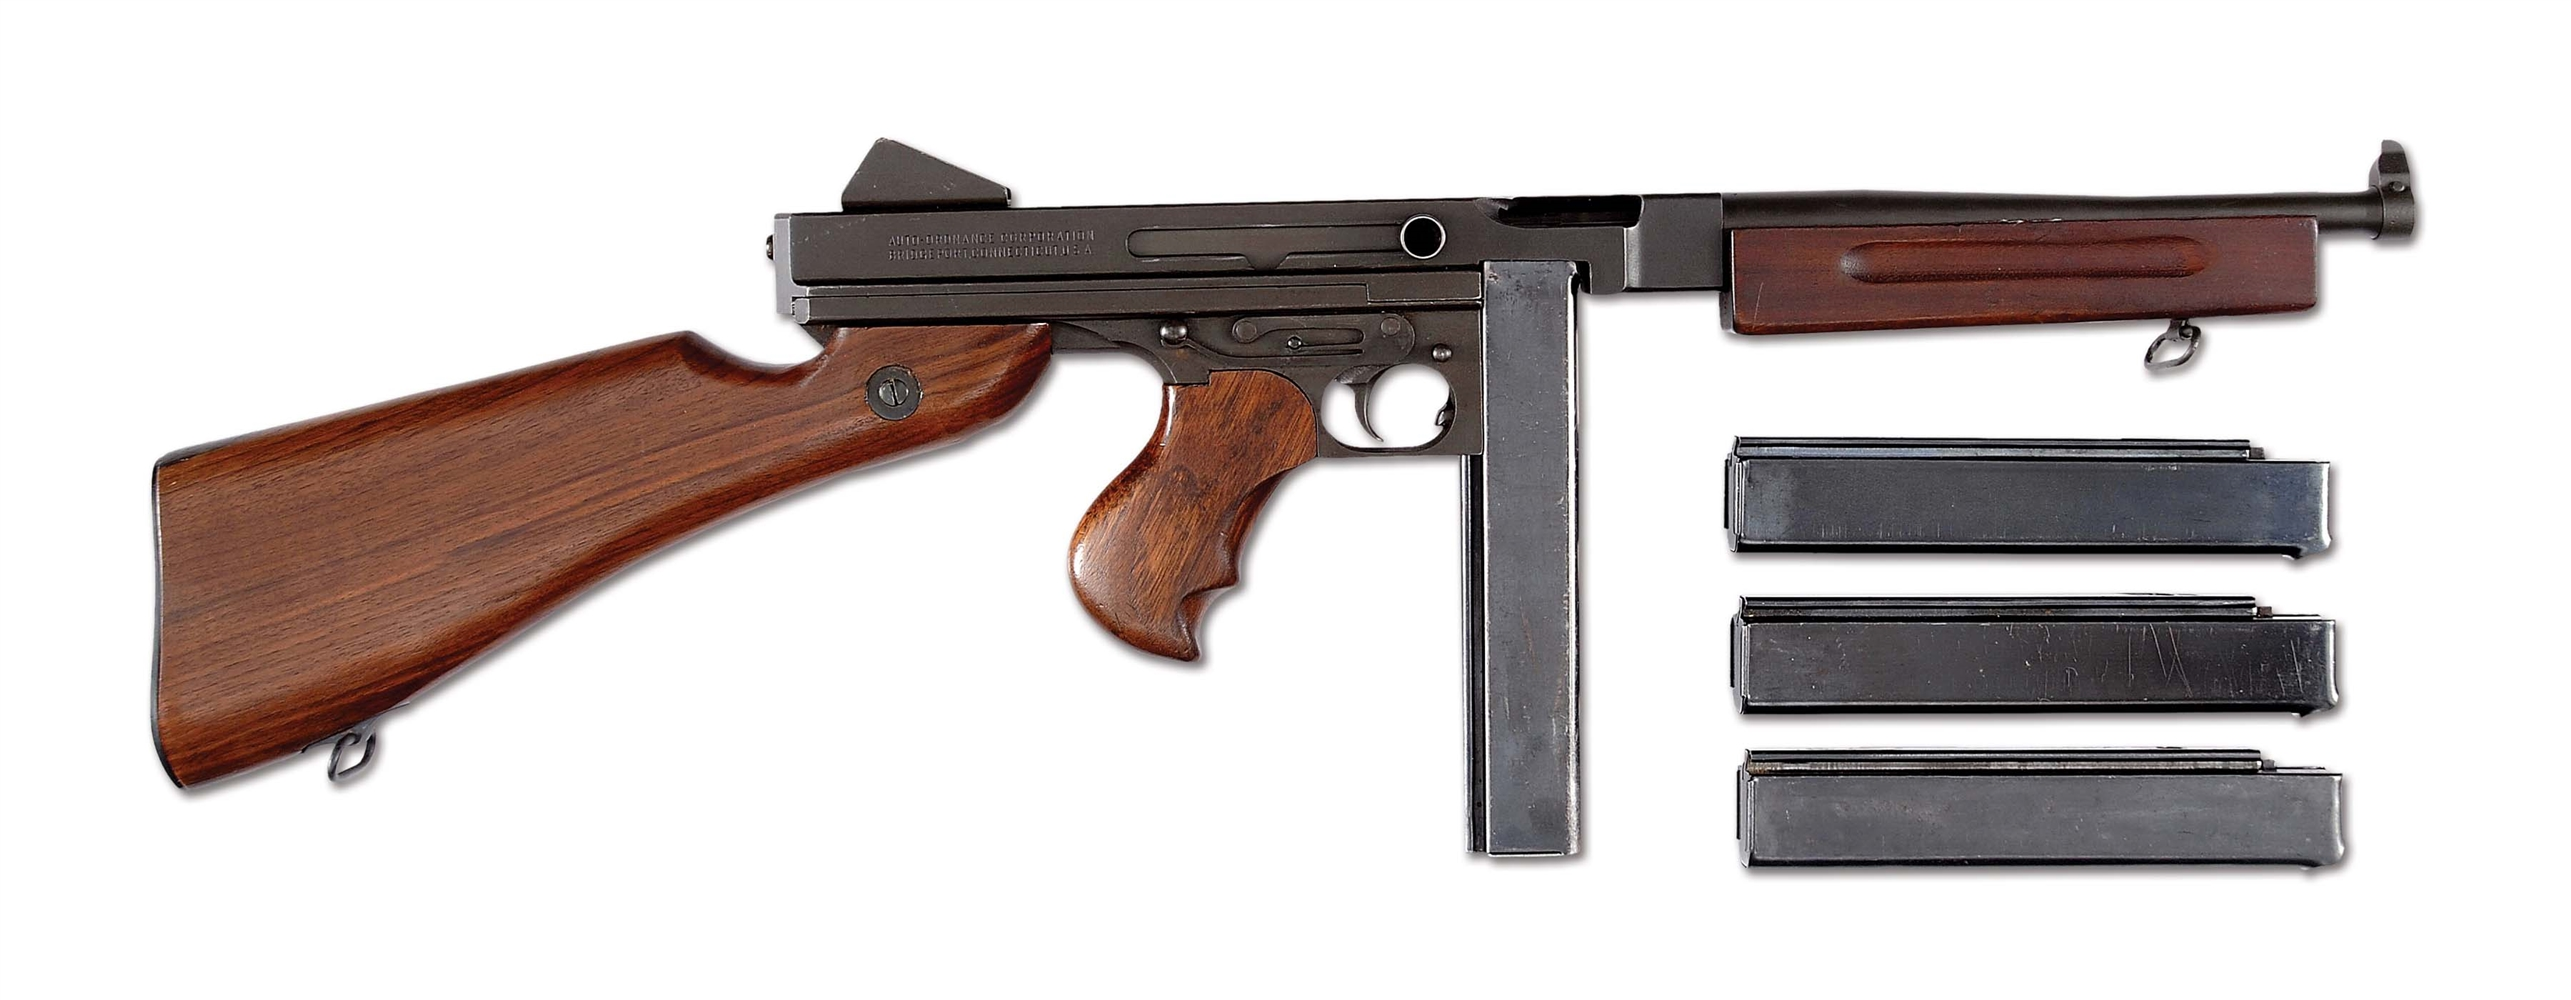 "(N) Outstanding Condition Auto-Ordnance Bridgeport ""US PROPERTY"" M1A1 Thompson Machine Gun (Curio & Relic)."